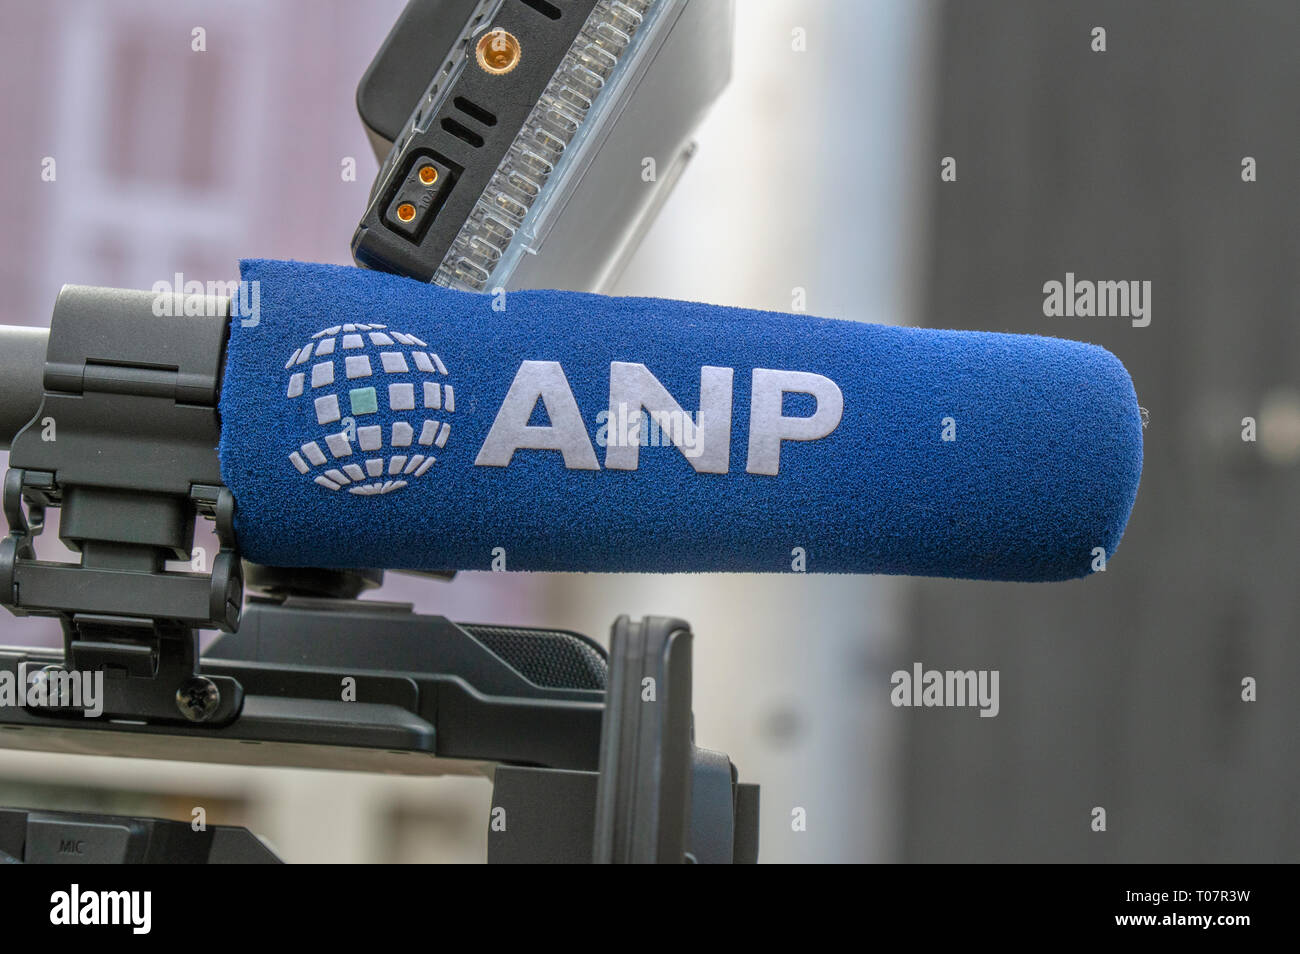 Close Up Of A ANP Microphone At Amsterdam The Netherlands 2019 - Stock Image